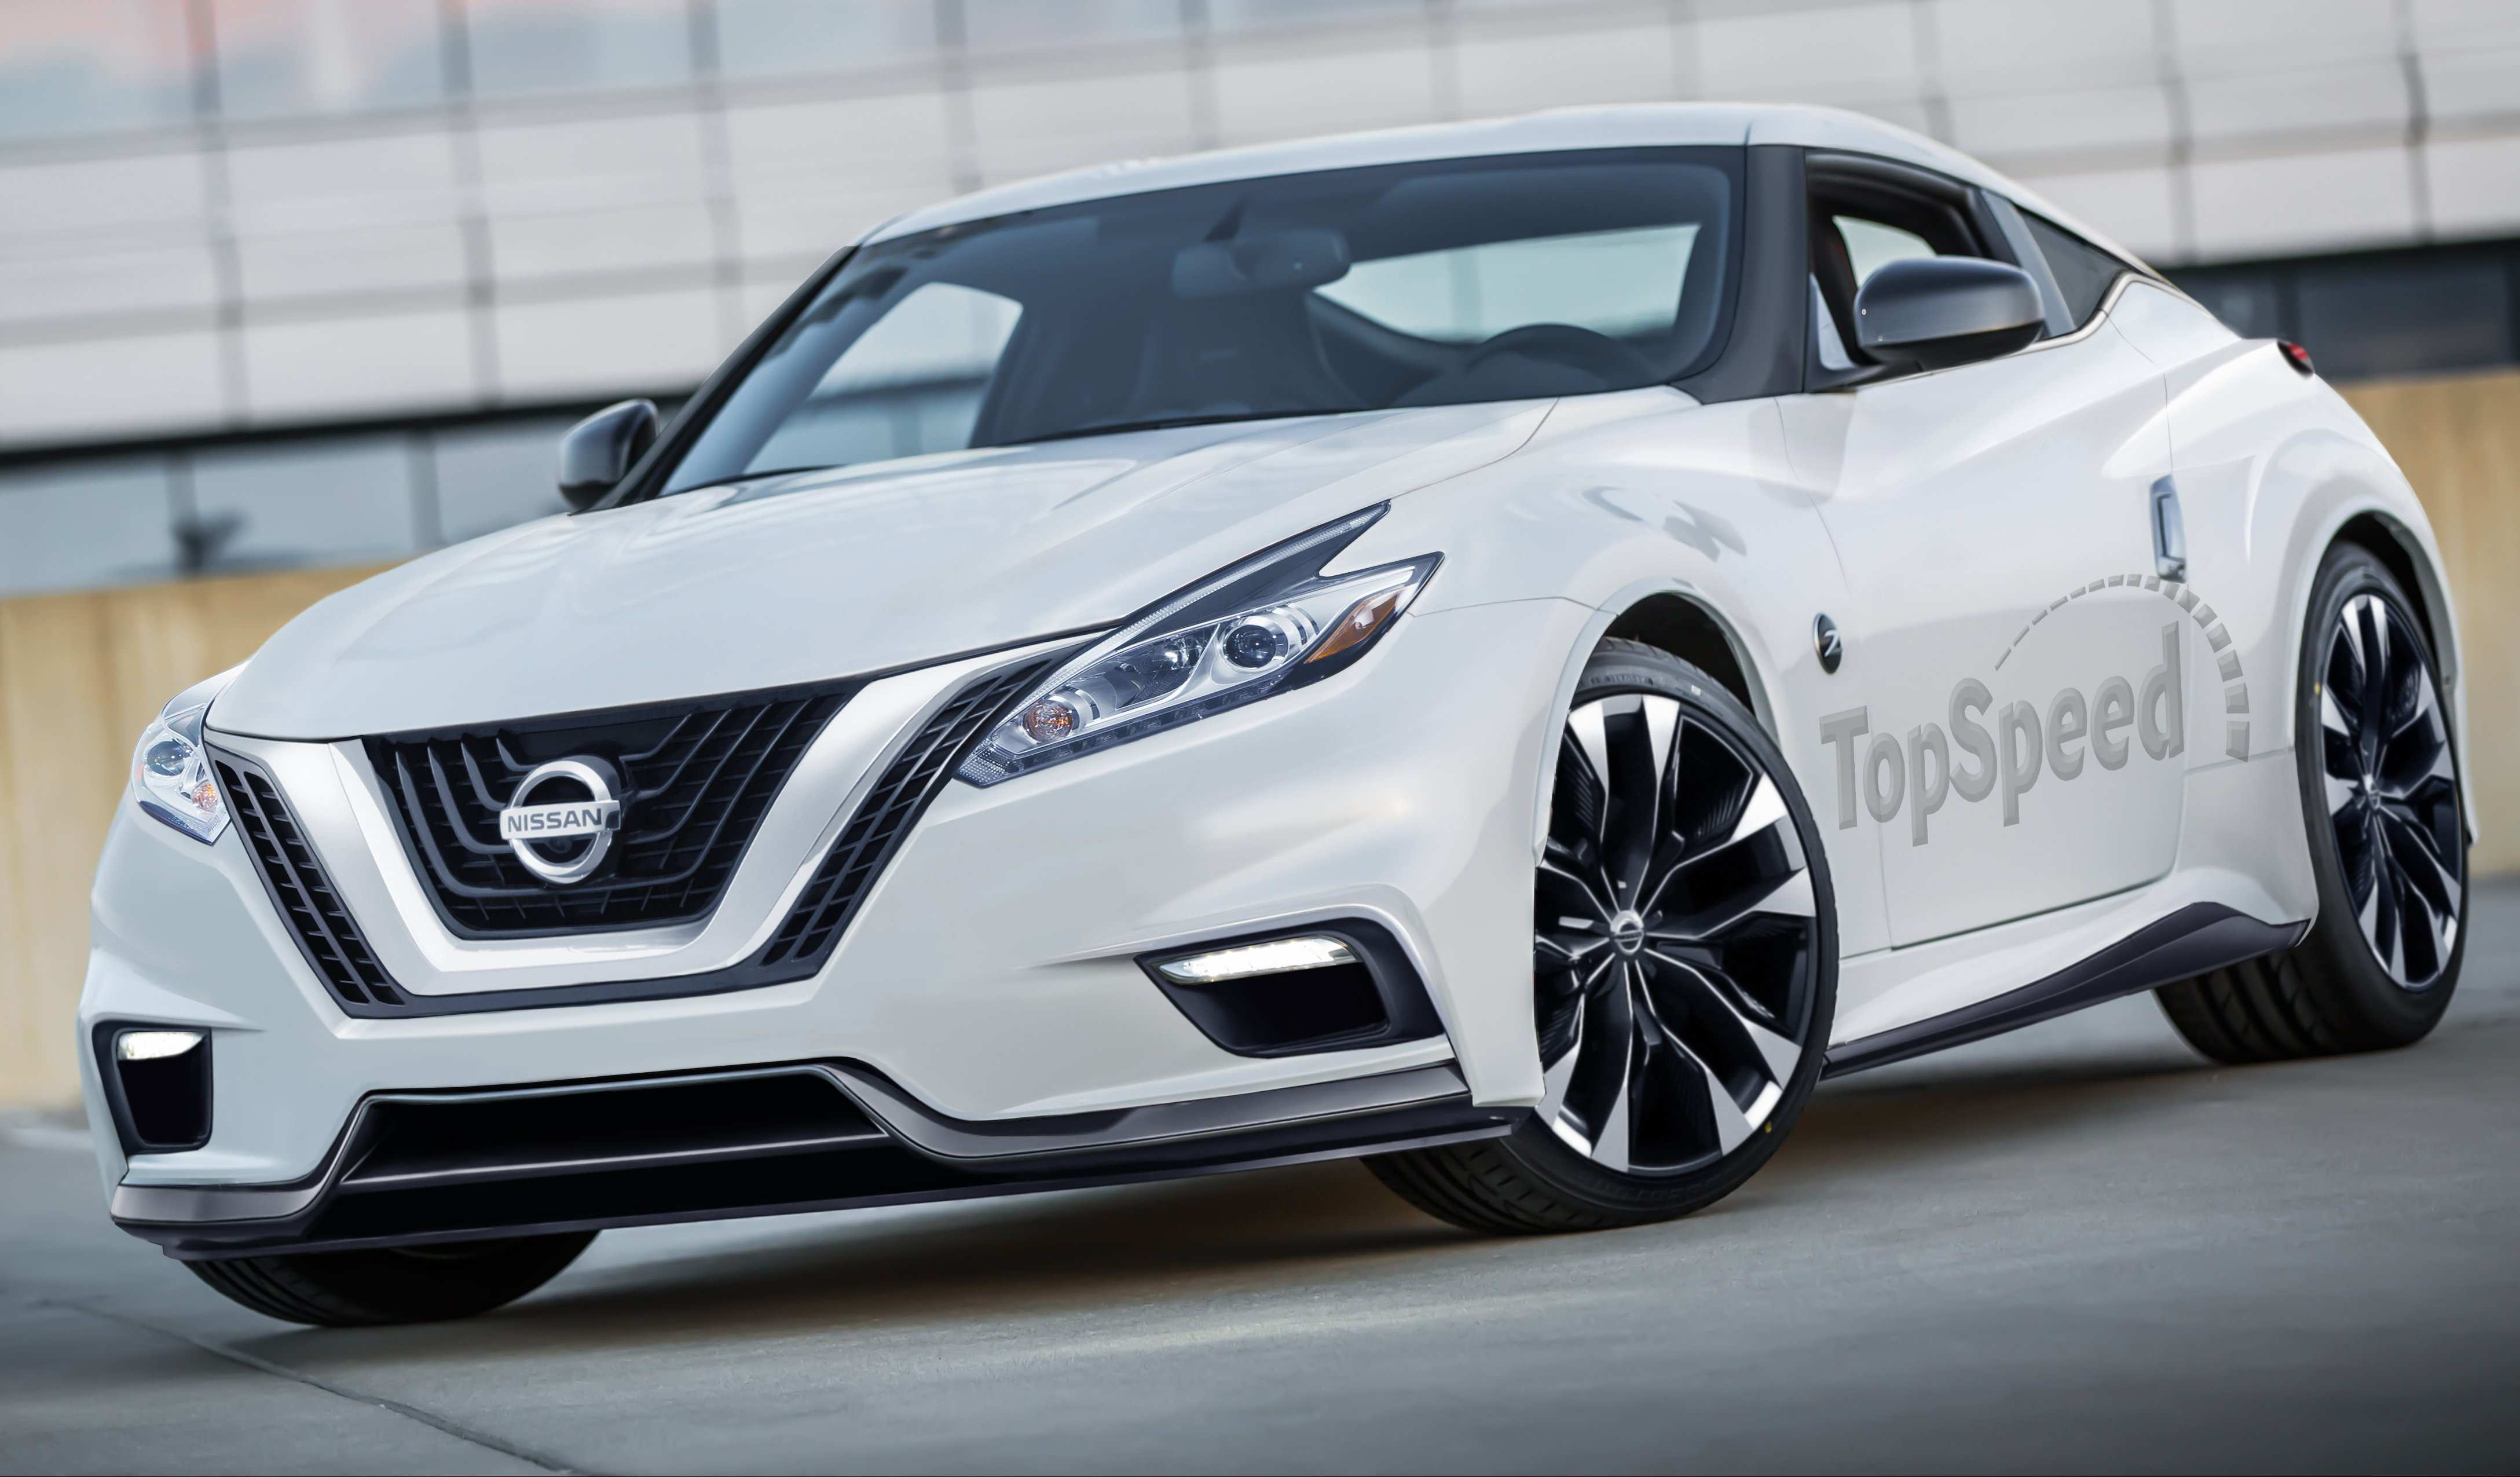 59 New Nissan New Z 2020 Release Date And Concept